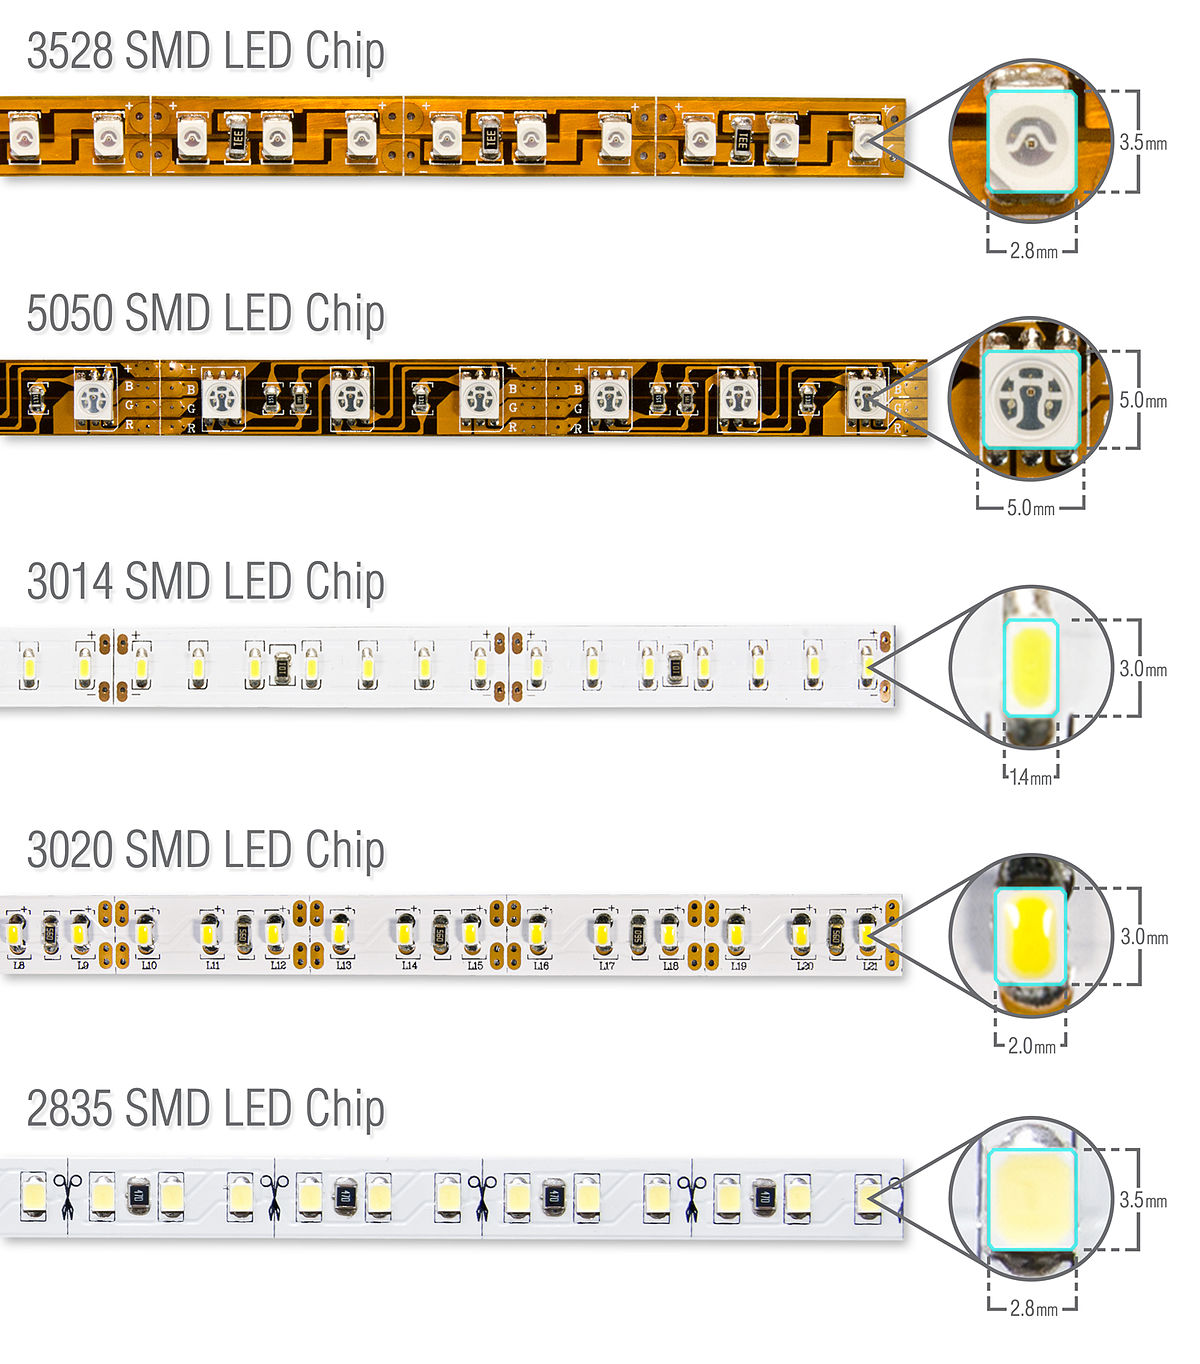 Px Smd Led Comparison Flexfireleds